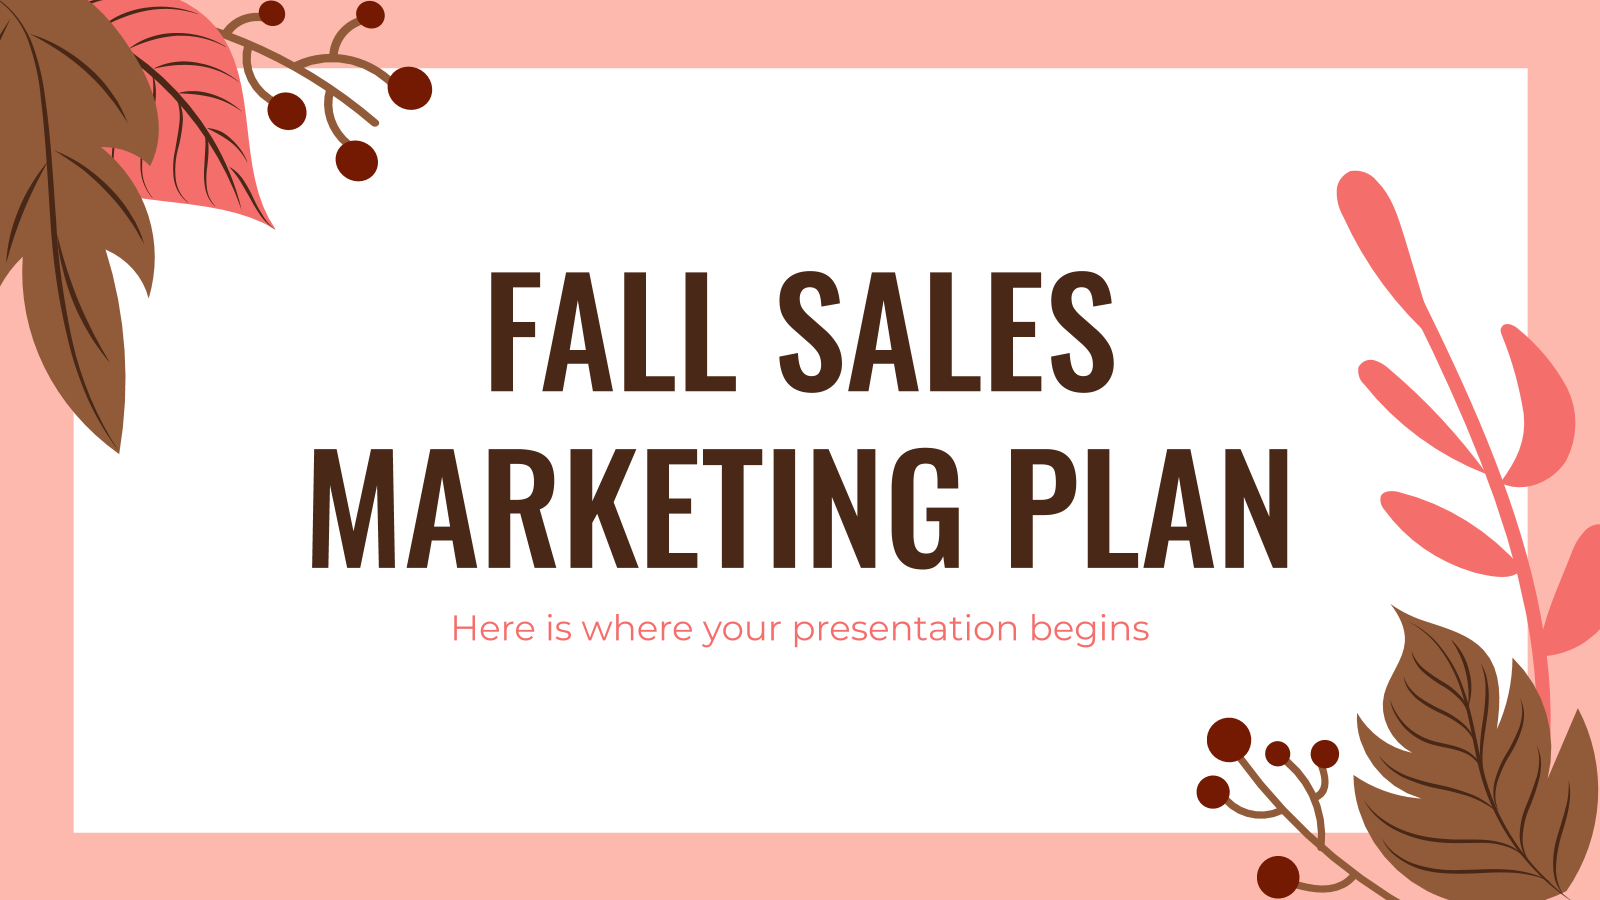 Fall Sales Marketing Plan presentation template